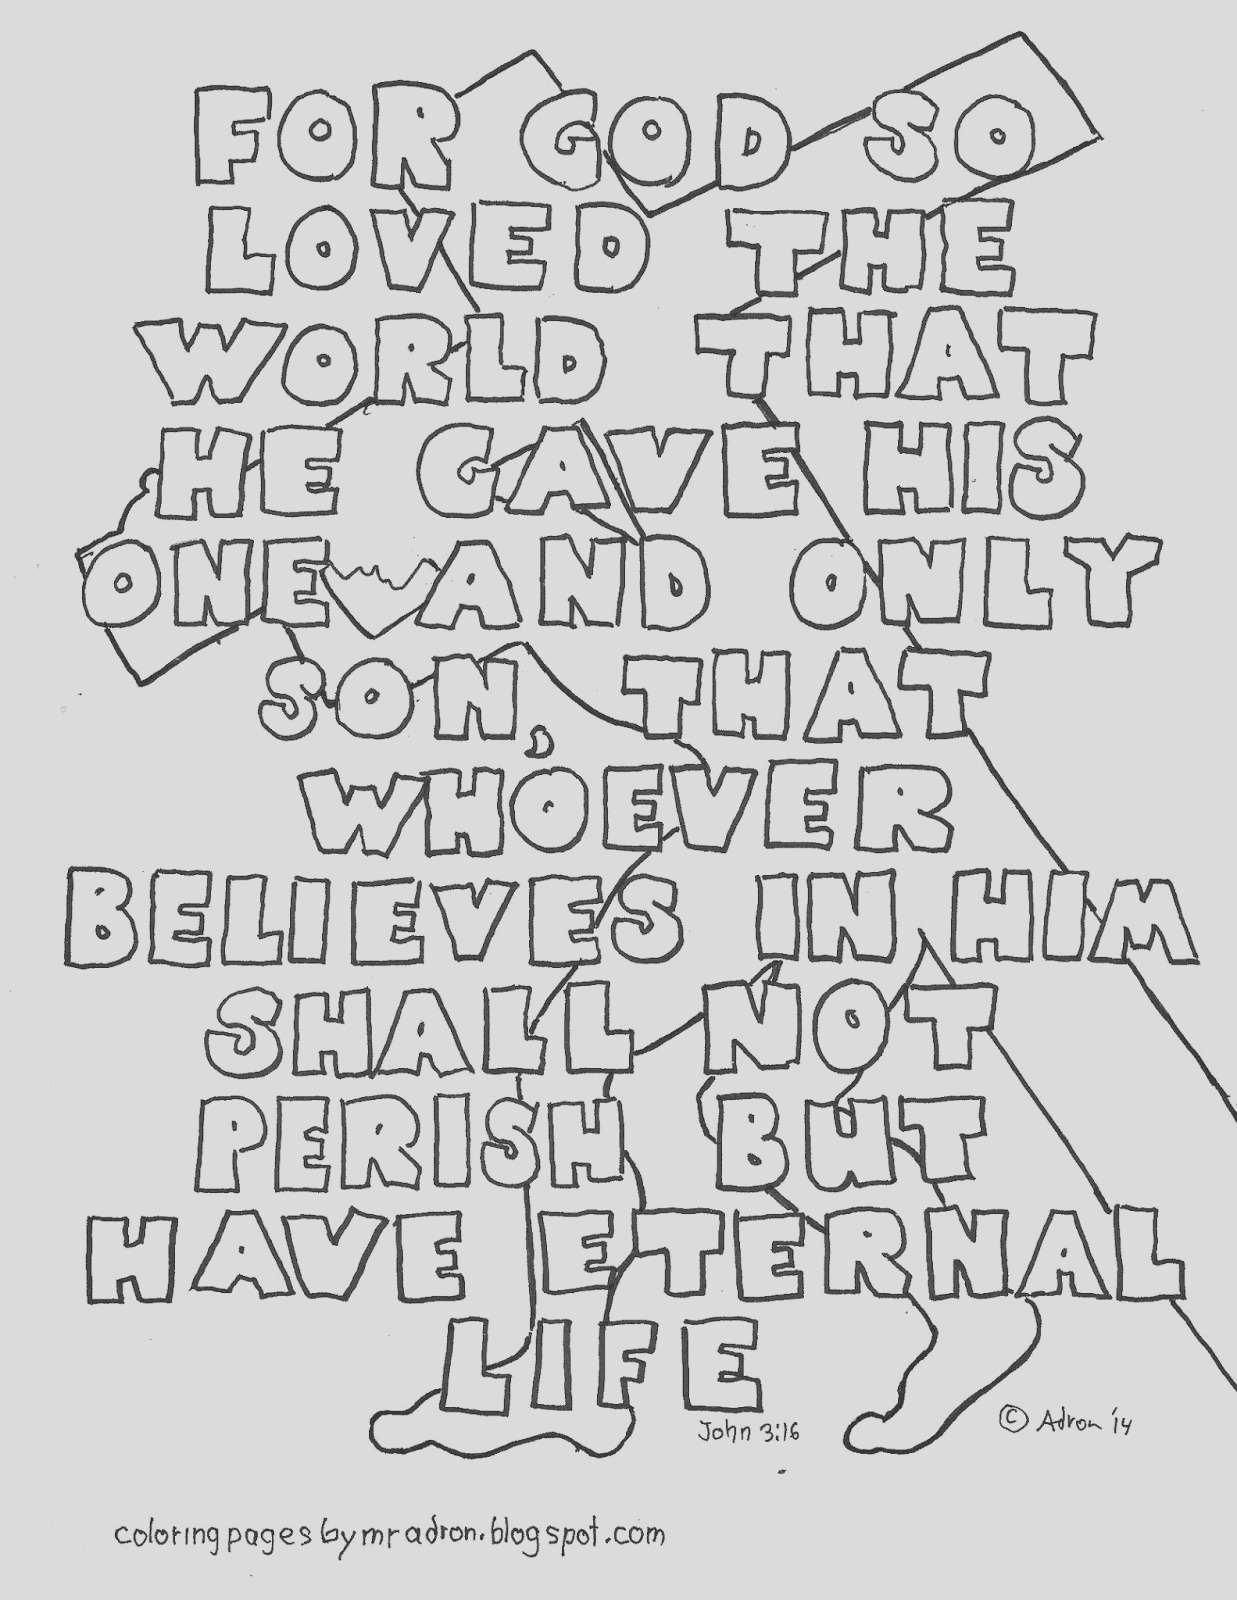 john 316 coloring page with all words